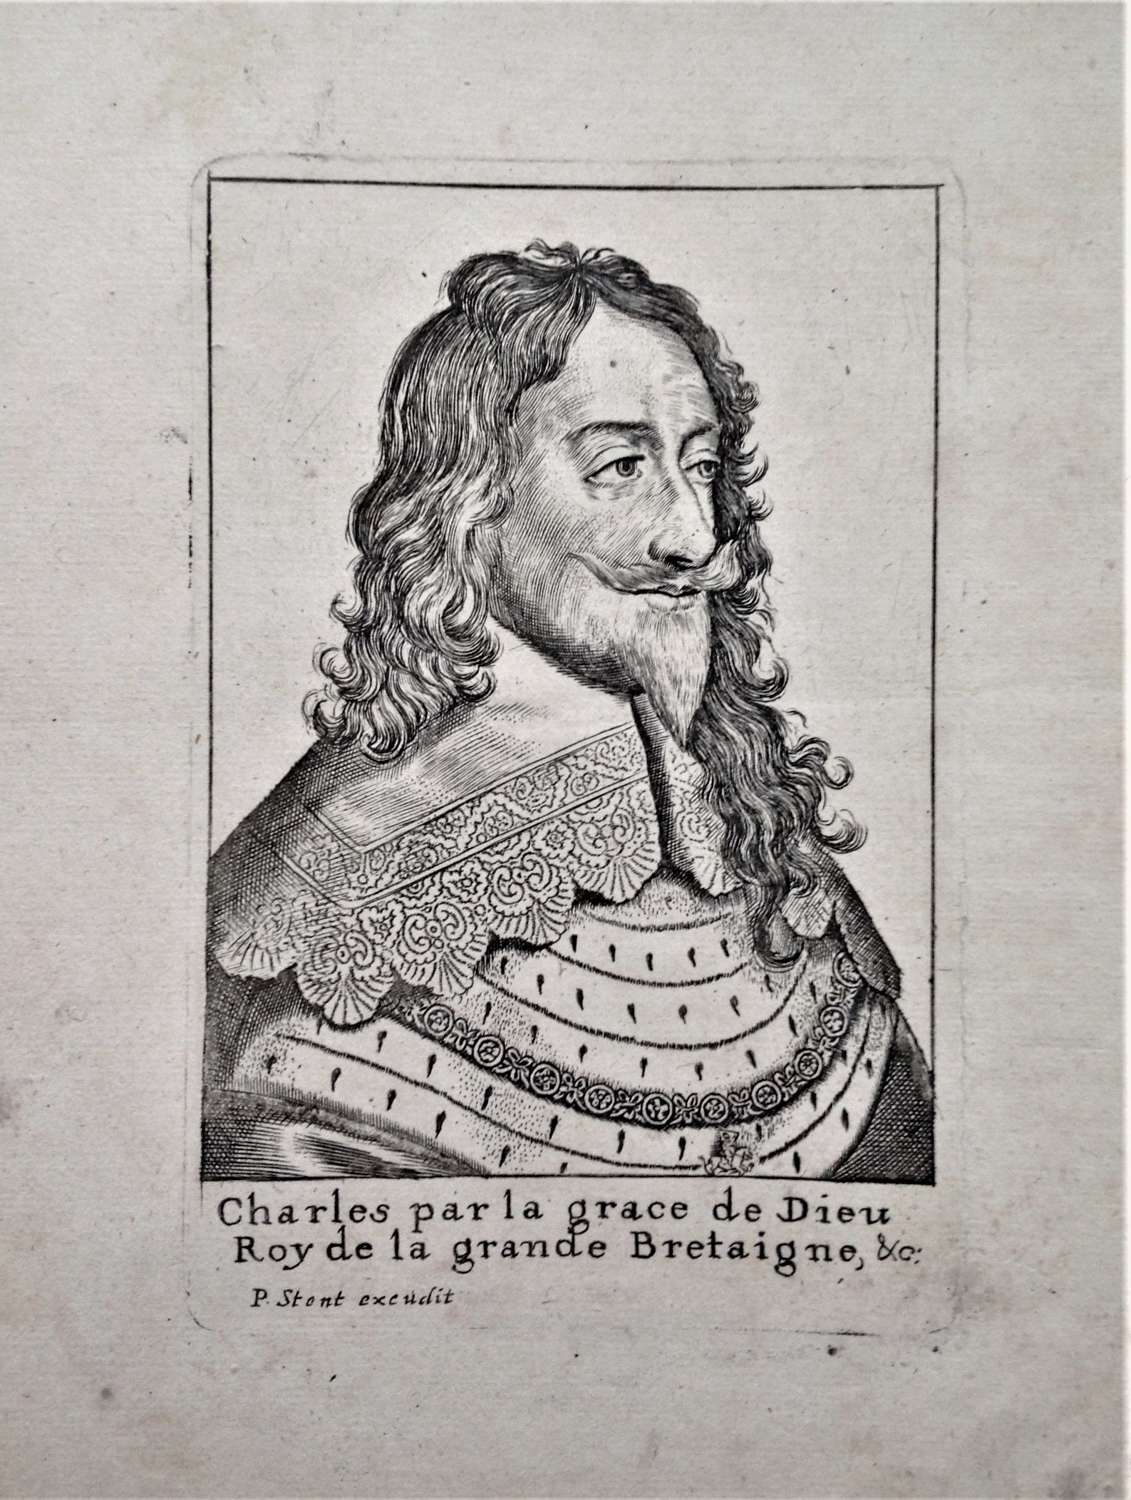 Peter Stent (1637-1665) after Wenceslaus Hollar (1607-1677)